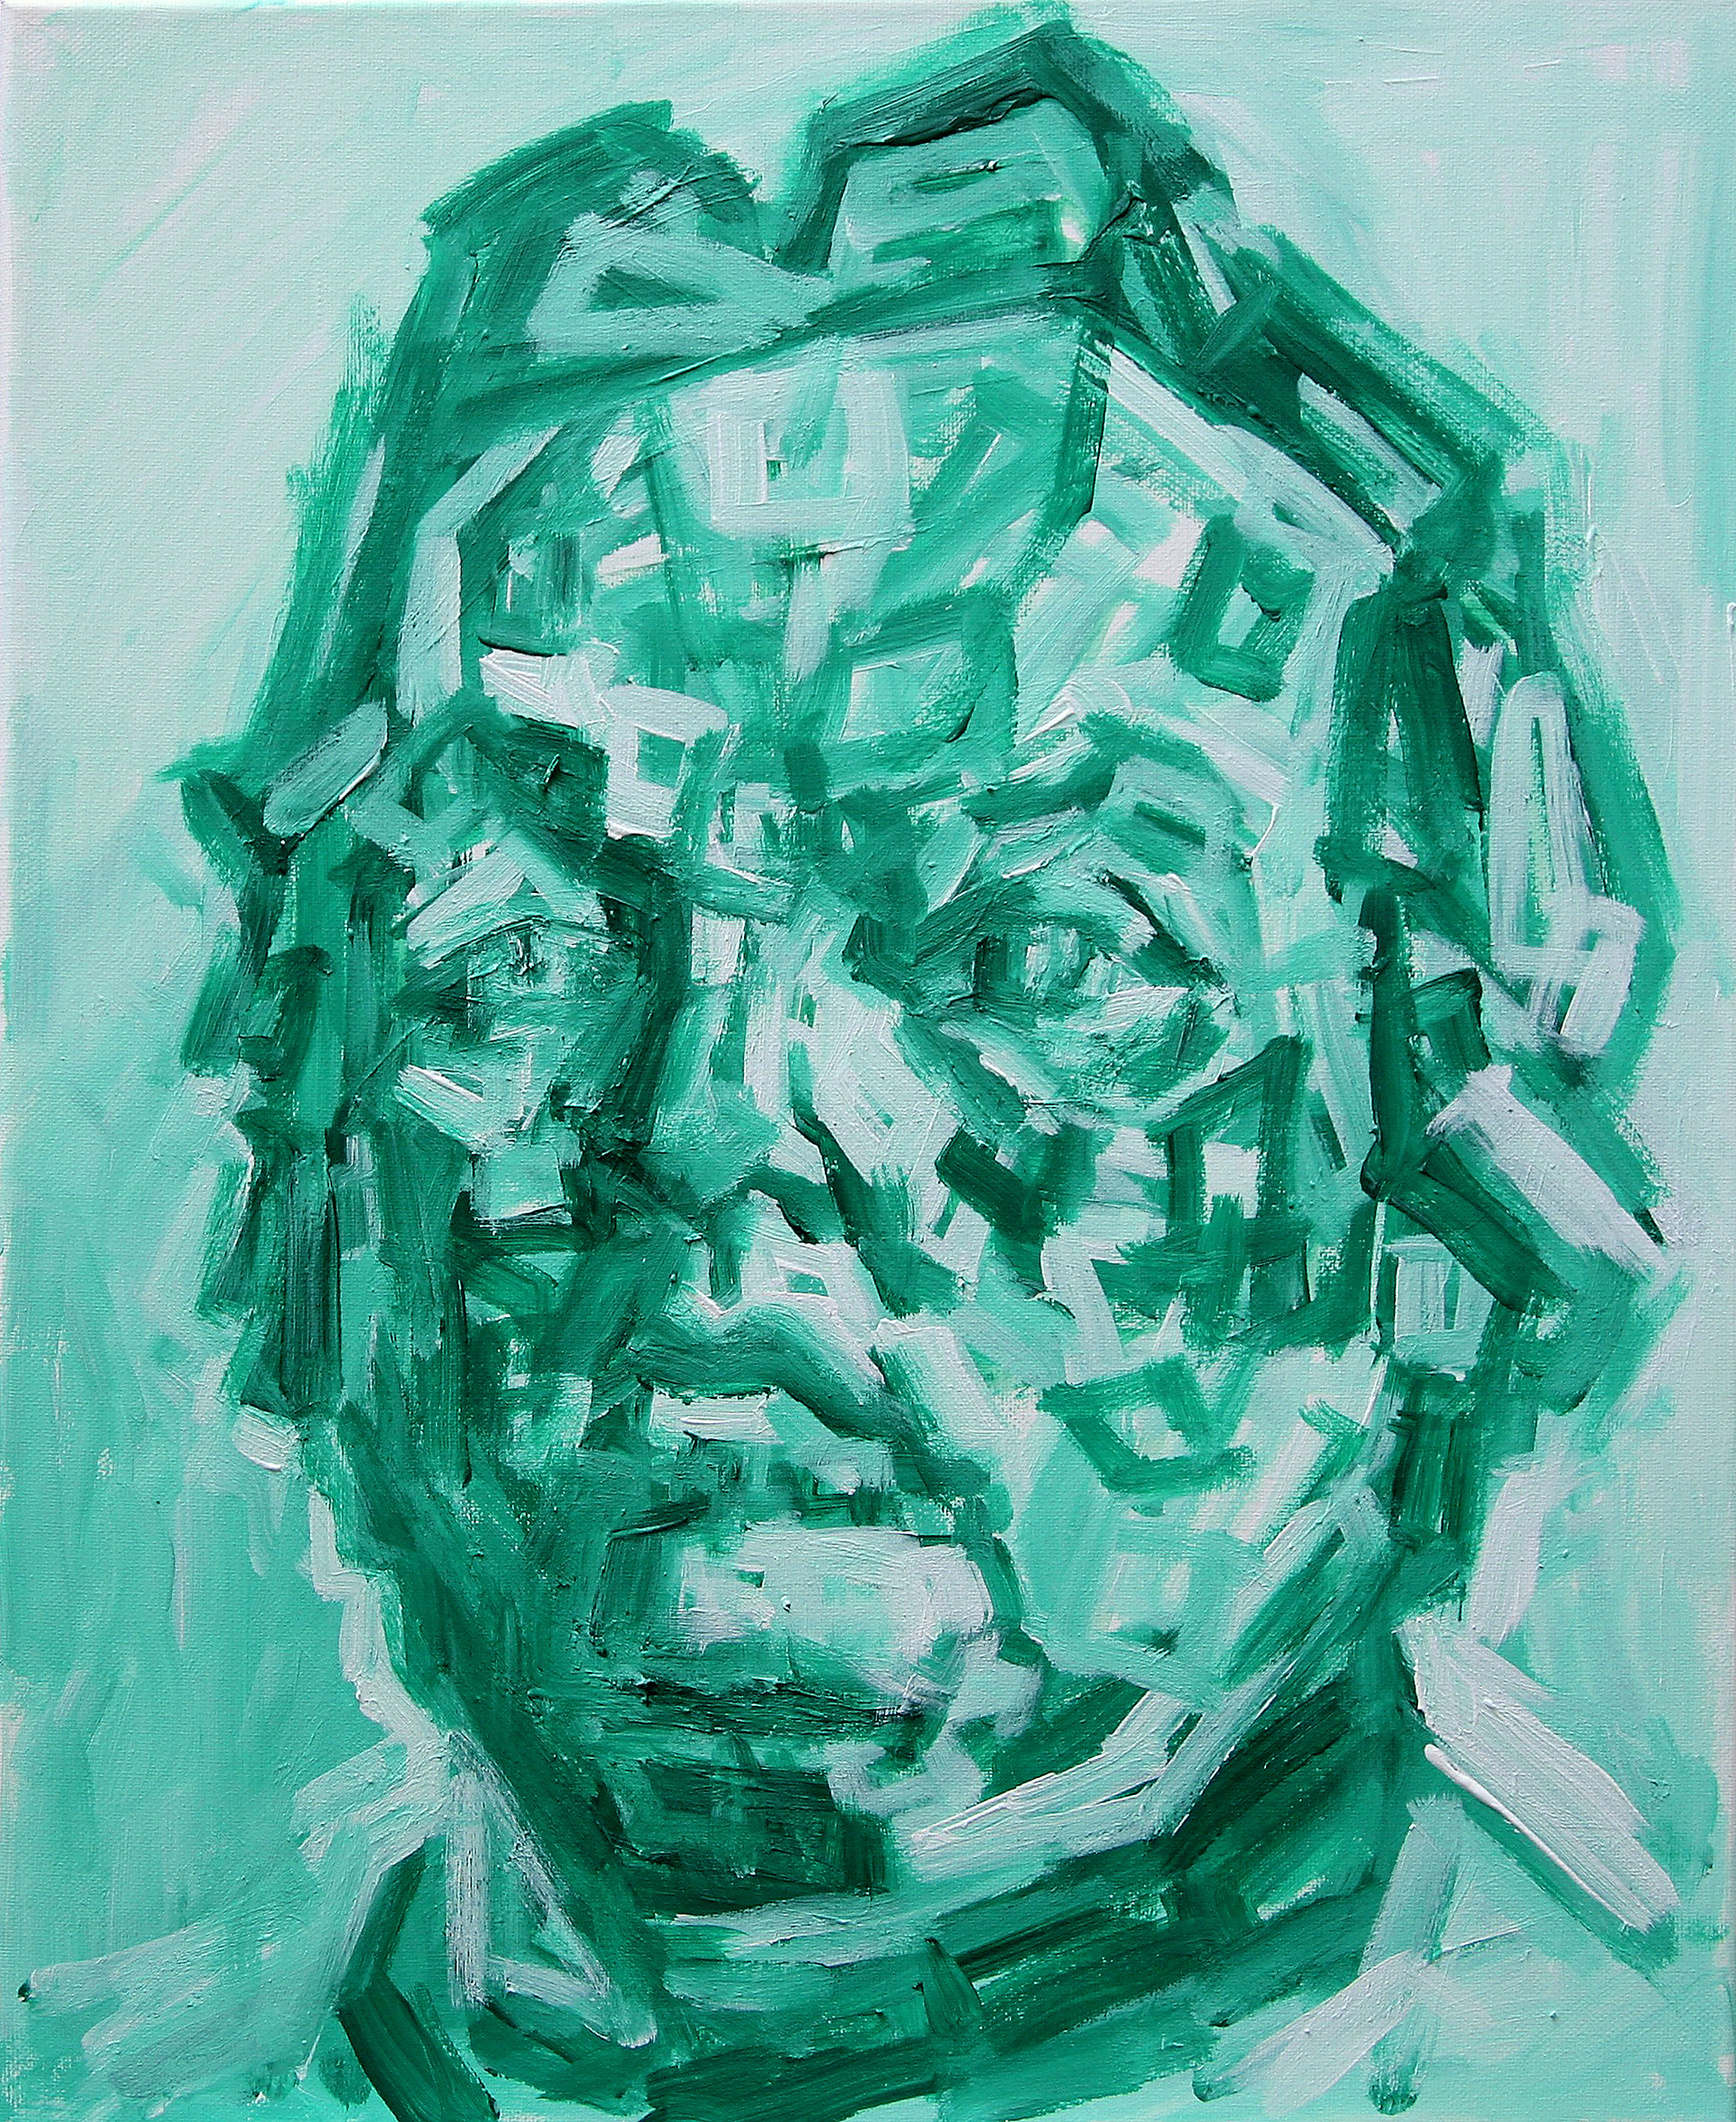 Emerald Self Portrait   acrylic on canvas  40 by 50 by 1.75 cm  unframed  £700